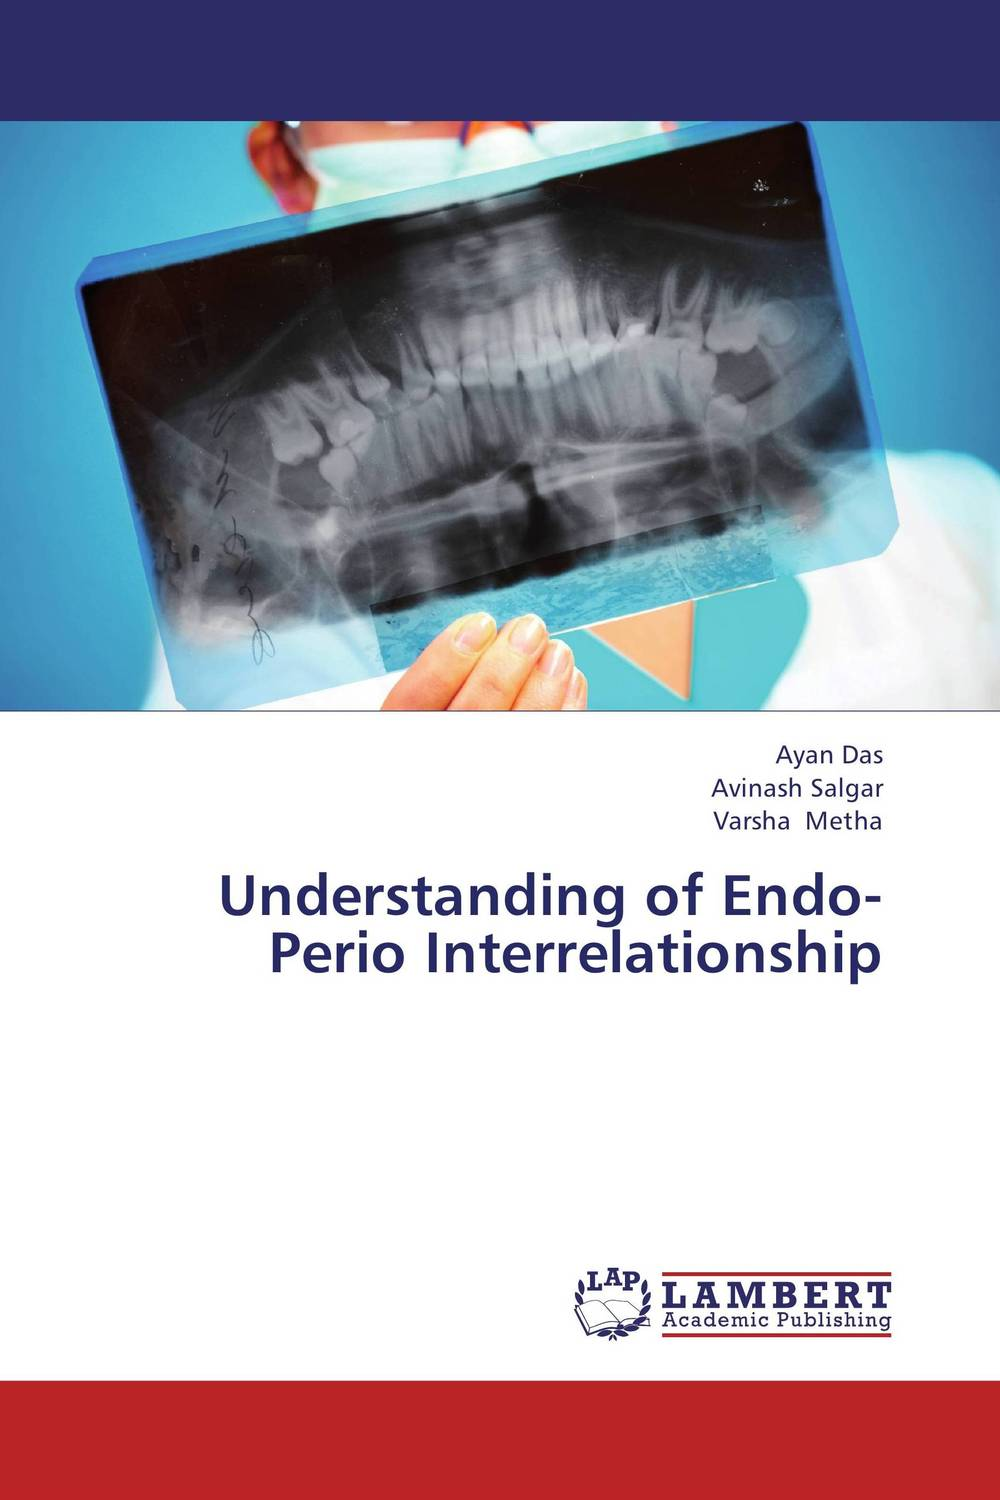 Understanding of Endo-Perio Interrelationship new arrival classification of periodontal diseases teeth model dental patient communication model process of periodontal disease